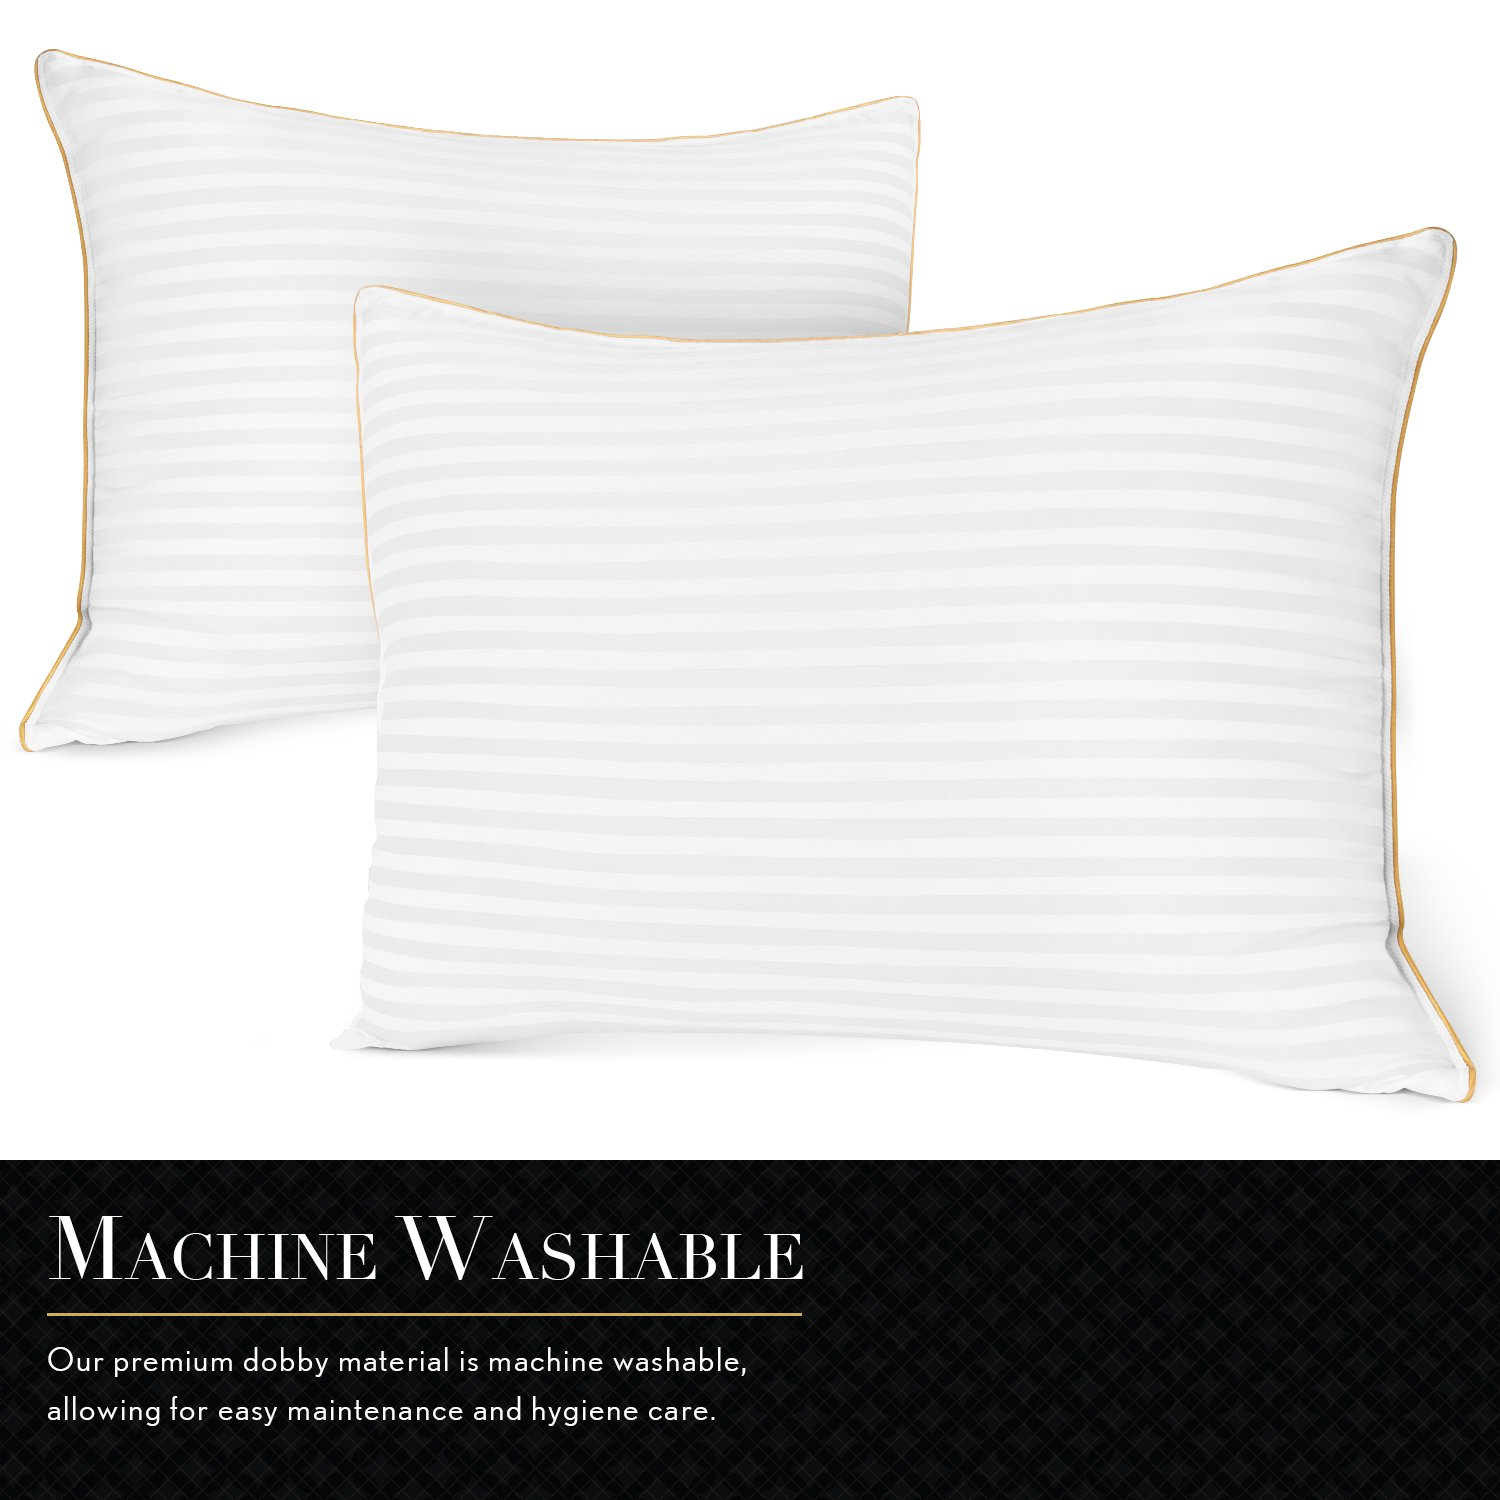 Italian Luxury Plush Gel Pillows (2-Pack) - Premium Quality Luxury Hotel Collection